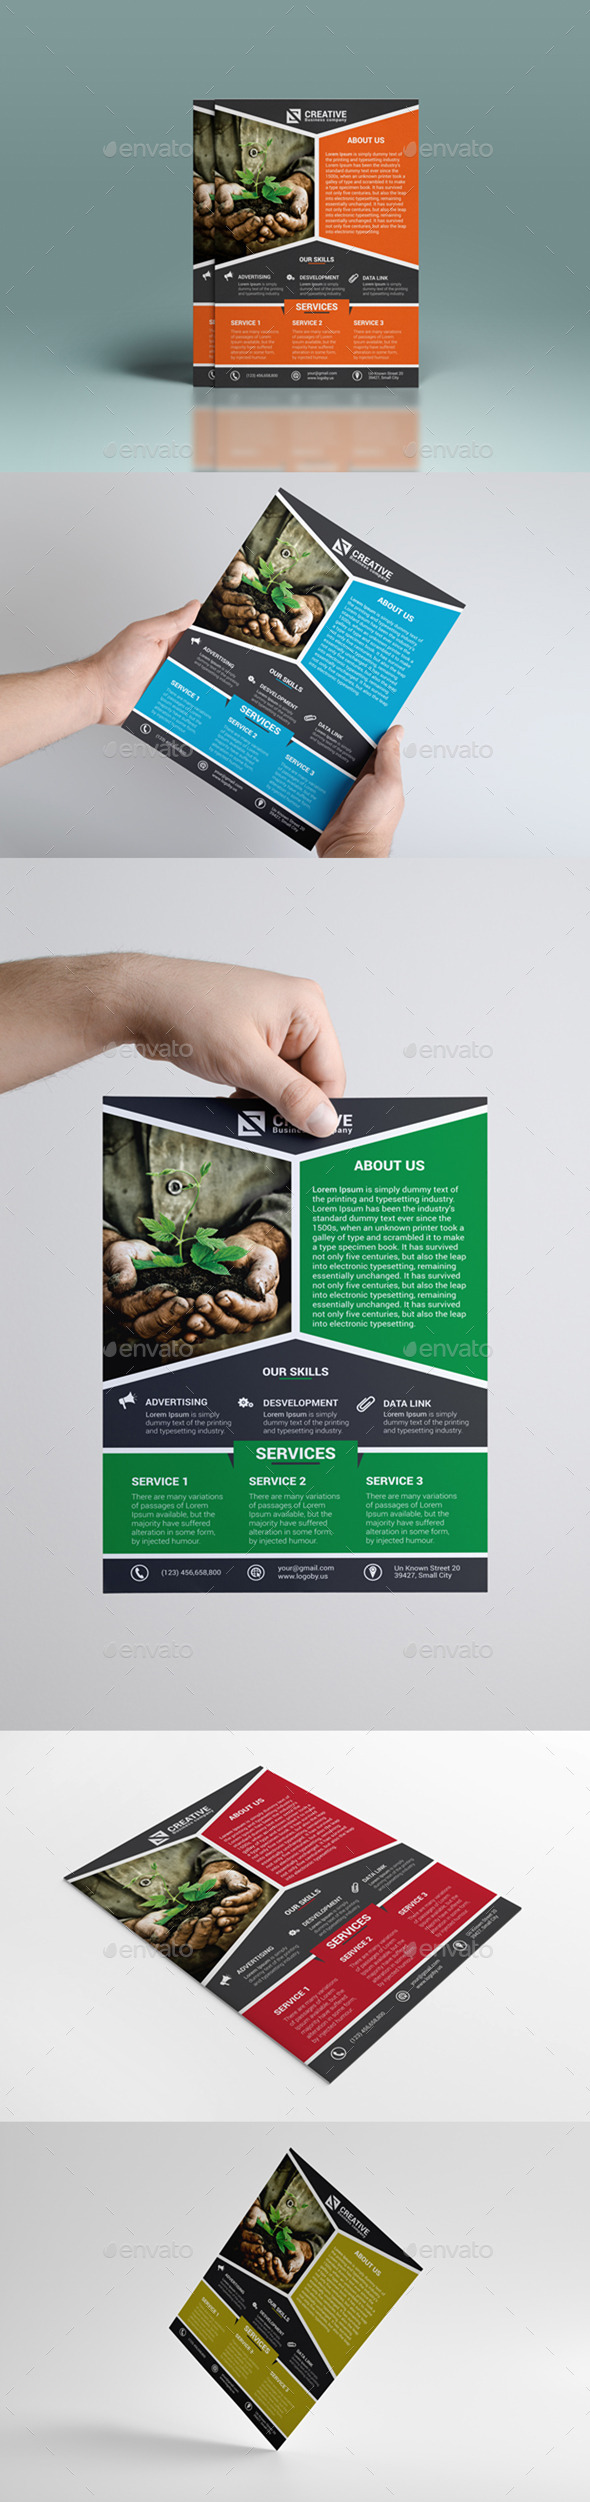 GraphicRiver Corporate Green Flyer 8979446